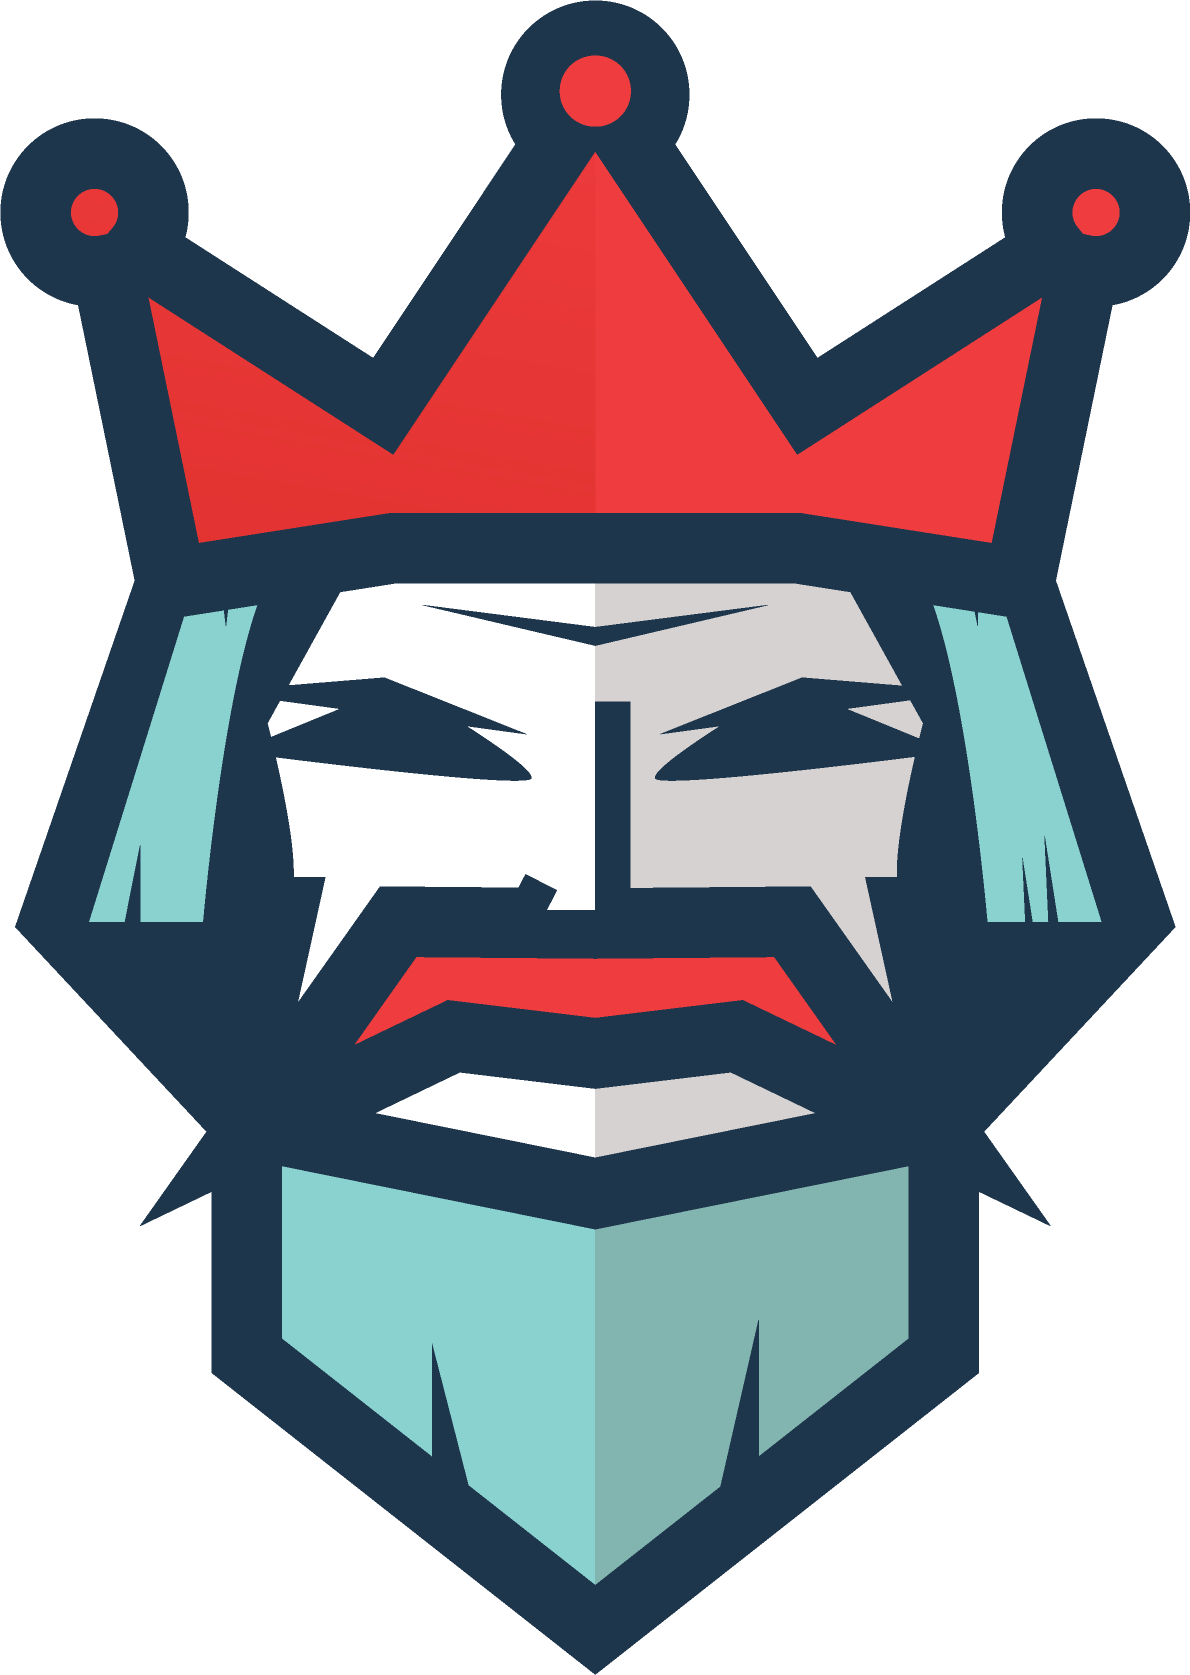 Logo gaming png. Empire unleashed icon zach